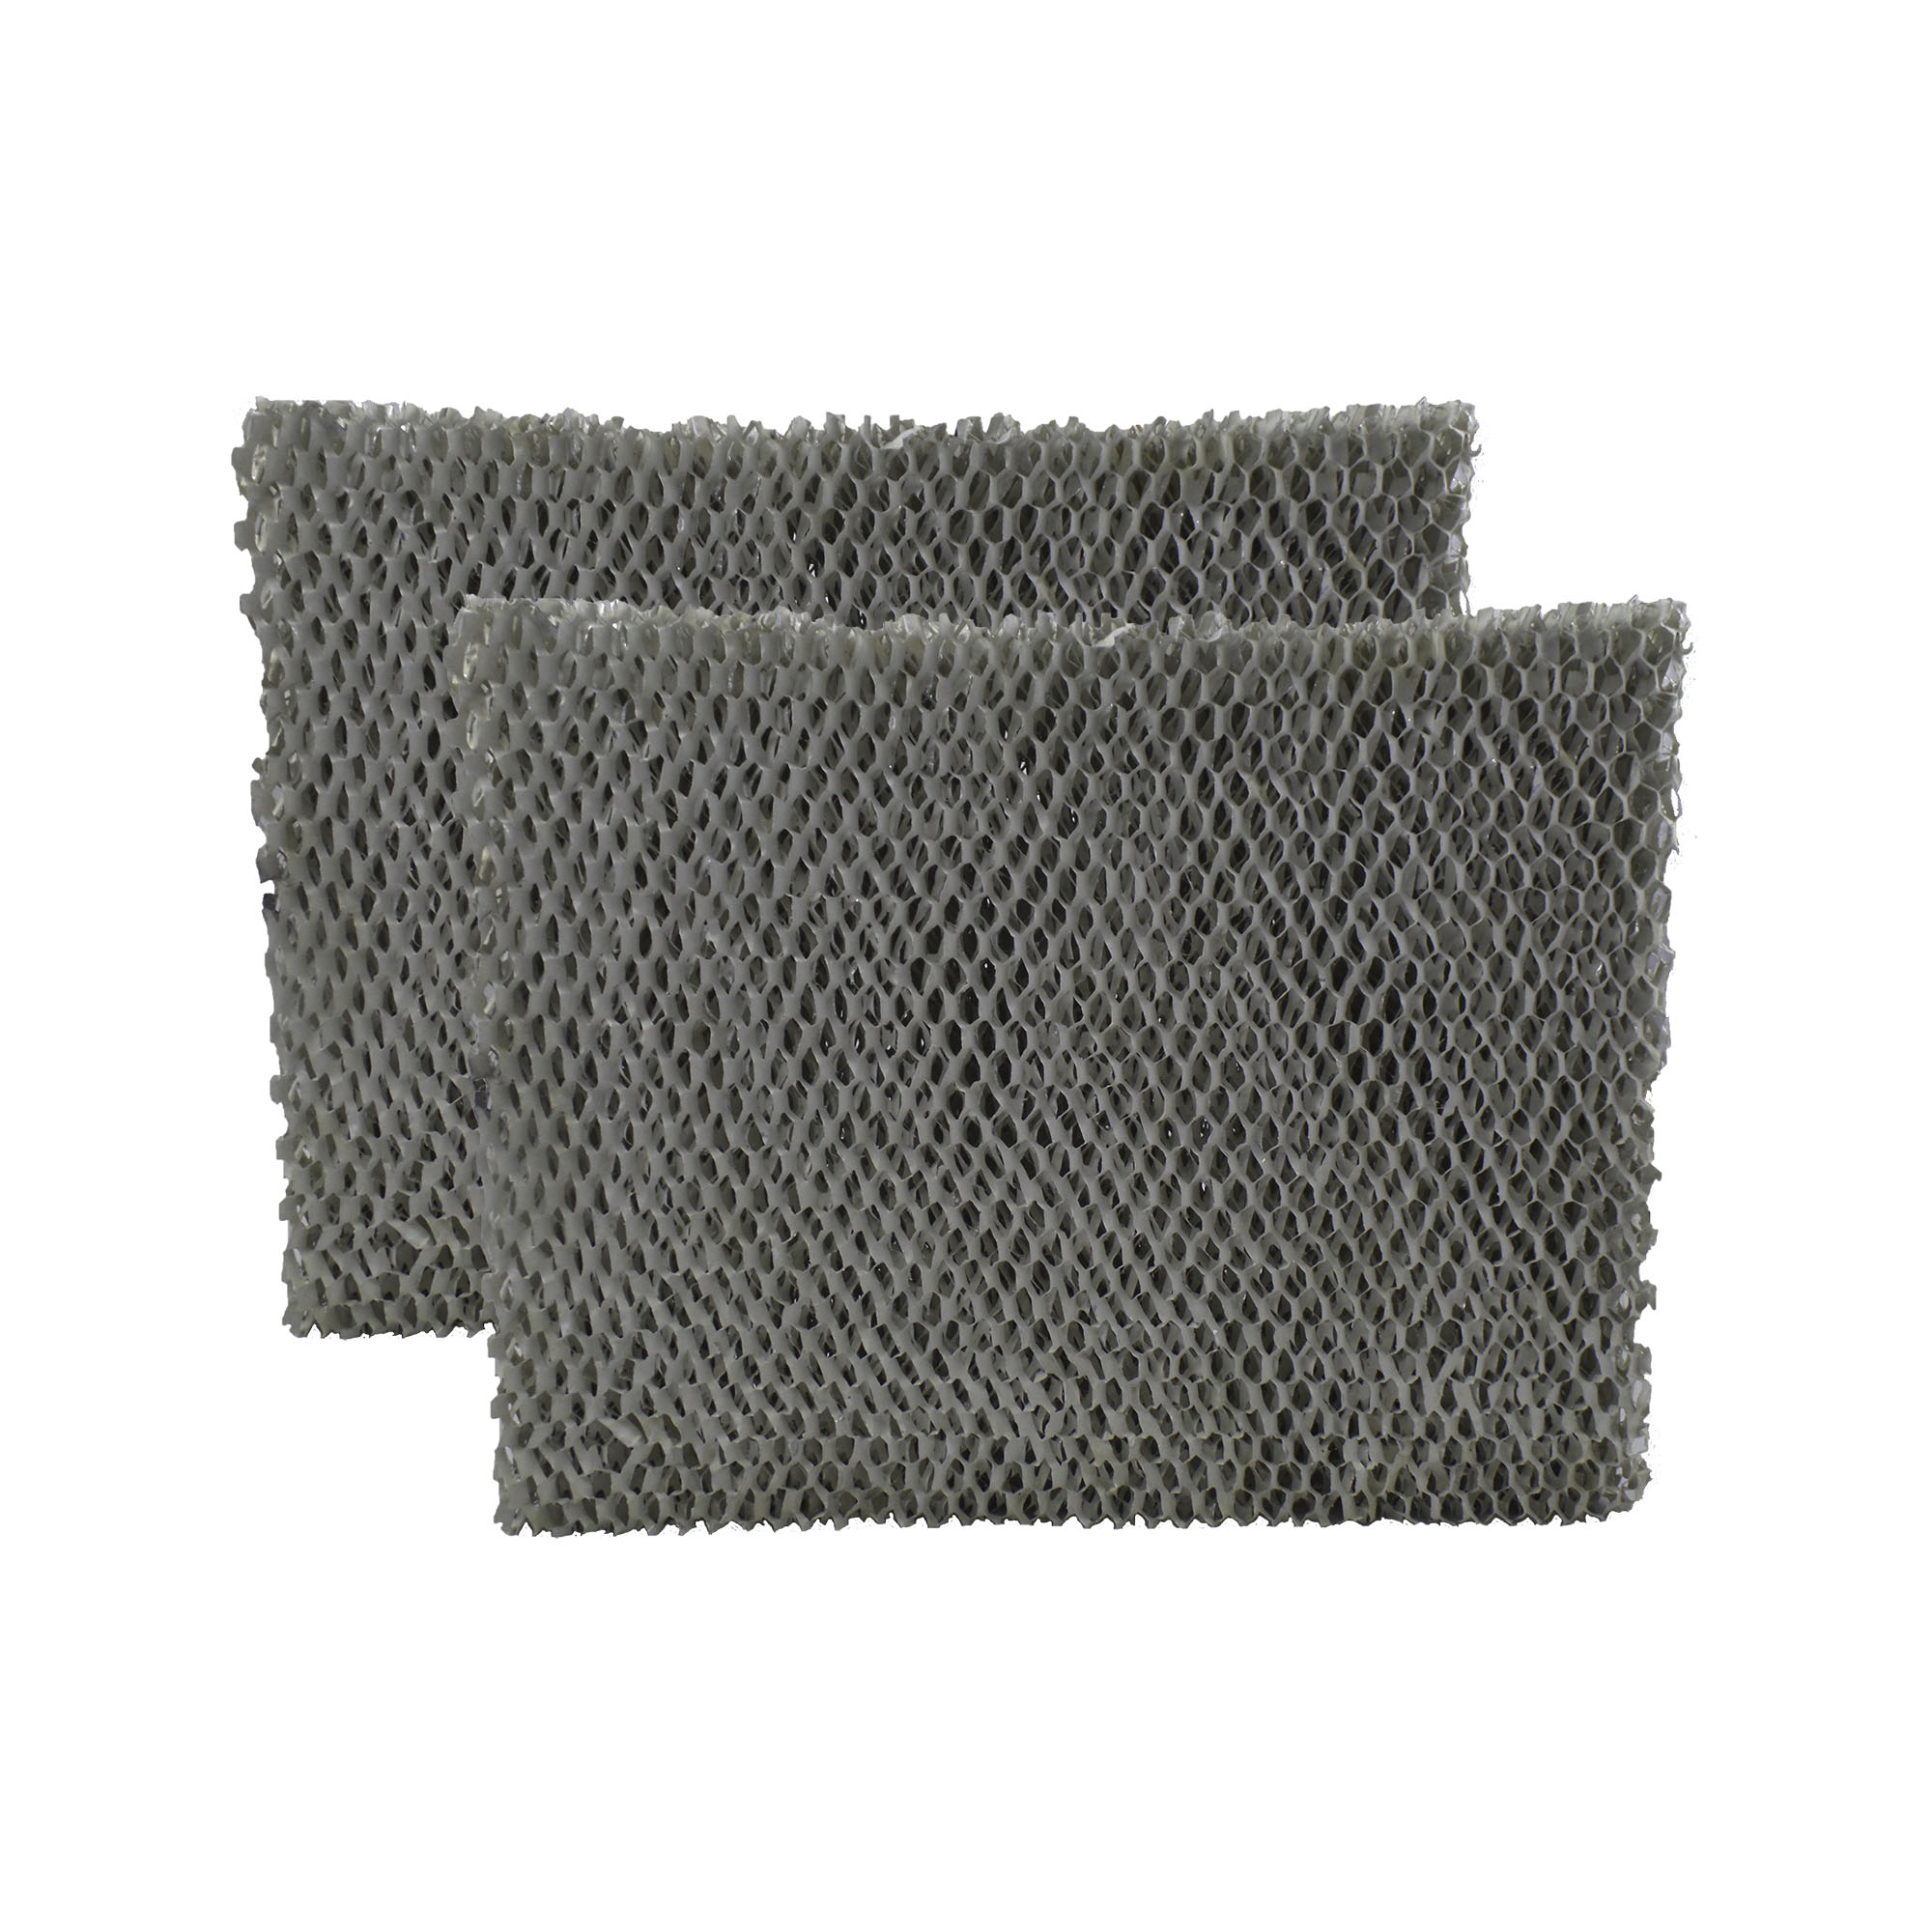 2 PACK Aprilaire 700, 760, 760A, 768 Humidifier Filter Replacement by Air Filter Fac...